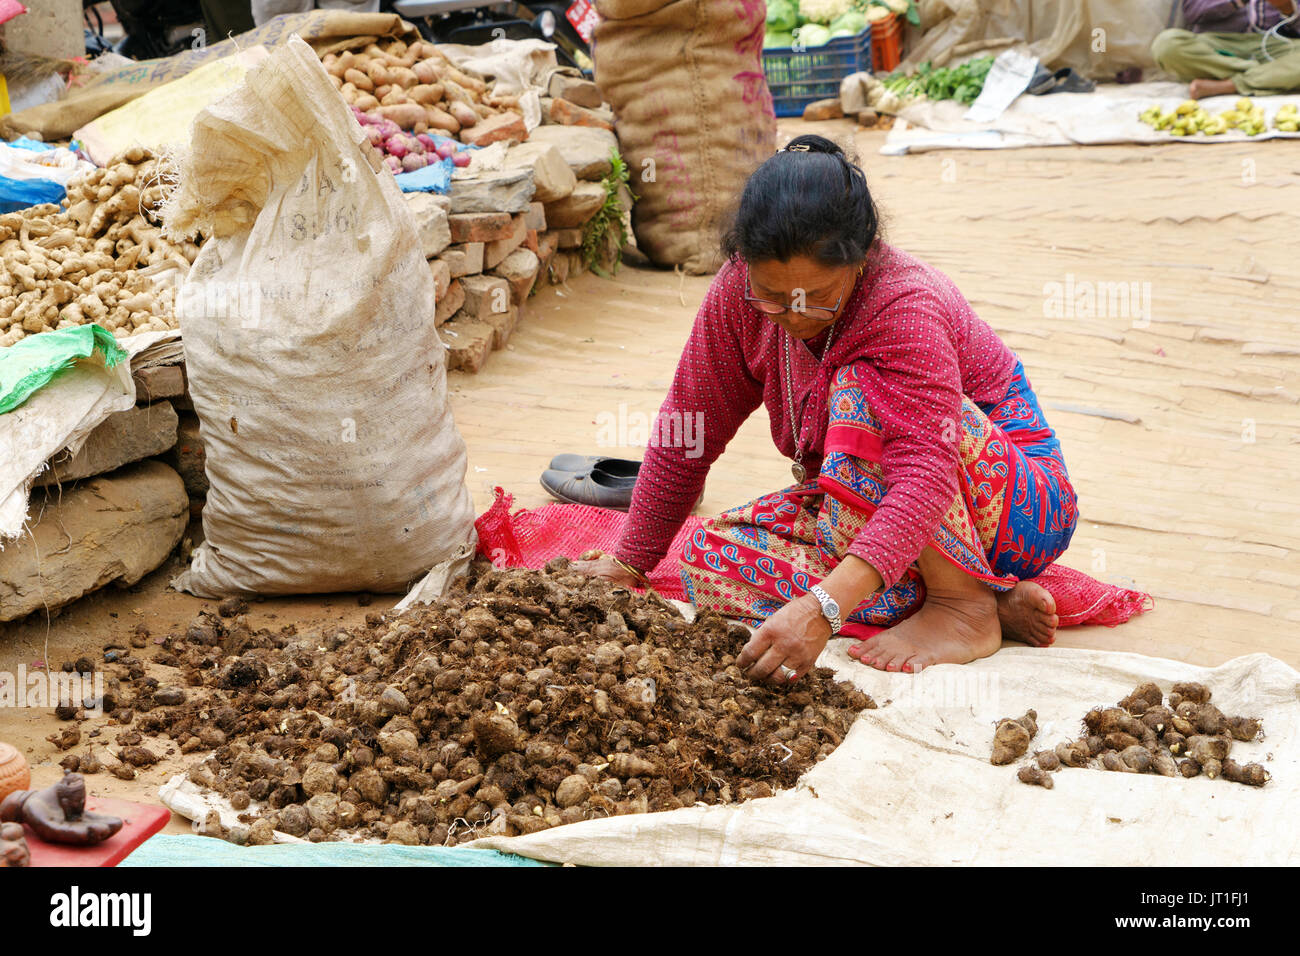 Nepalese woman sorting taro roots in an exterior market, Bhaktapur. - Stock Image